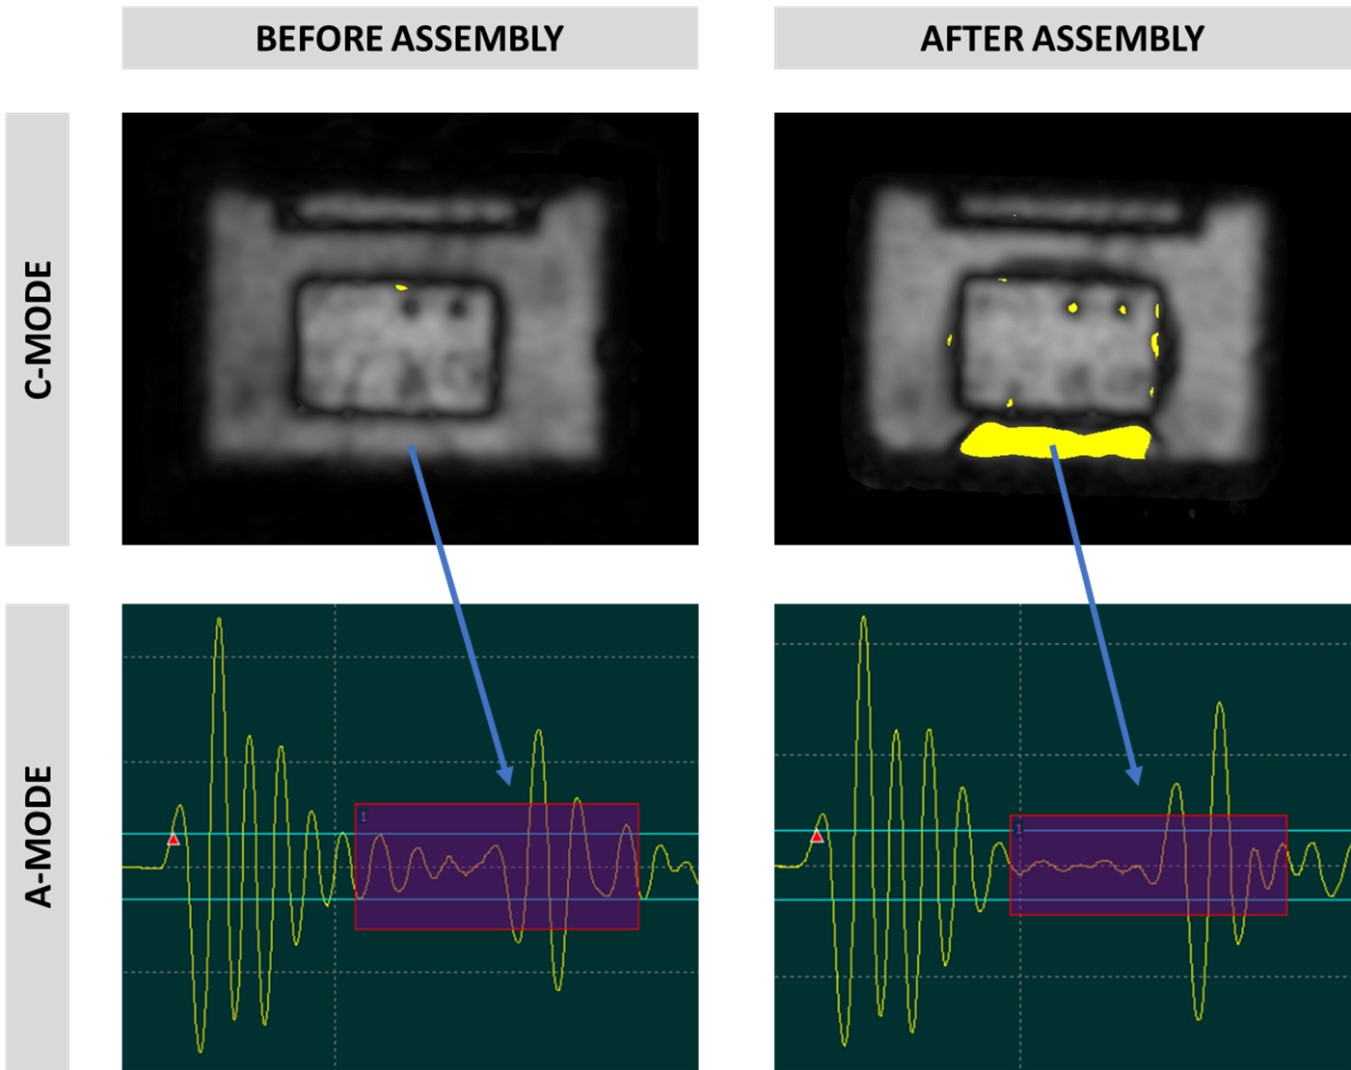 Confocal Scanning Acoustic Microscopy inspection of a component before and after assembly, along with the A-scanning image of the corresponding area.